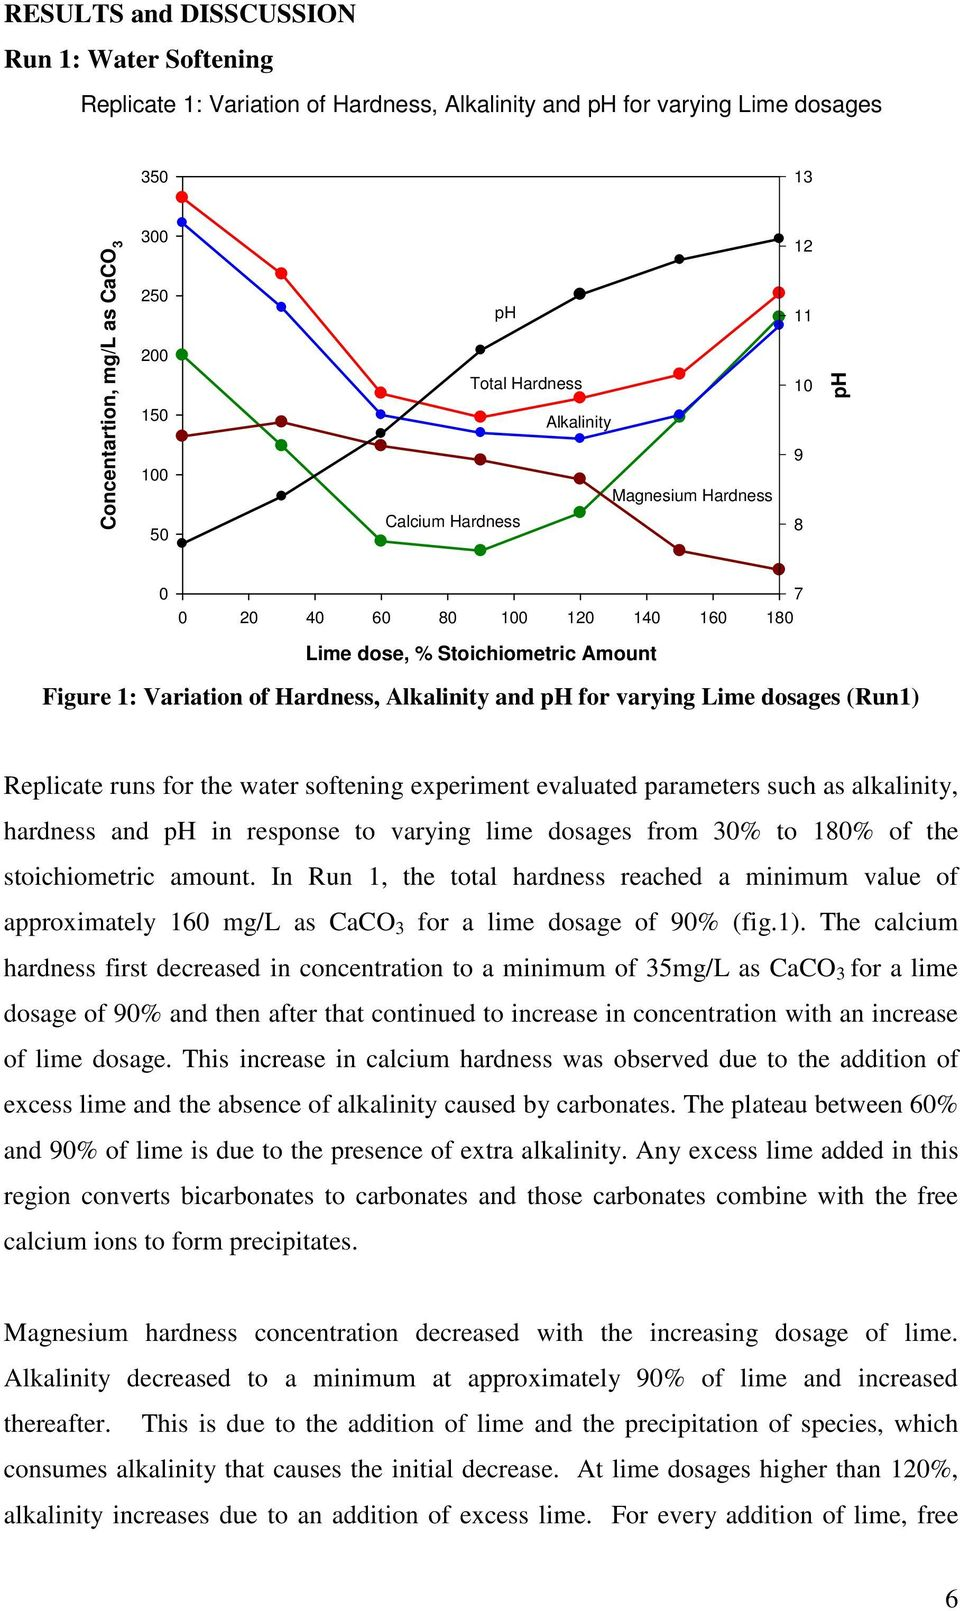 varying Lime dosages (Run1) Replicate runs for the water softening experiment evaluated parameters such as alkalinity, hardness and ph in response to varying lime dosages from 30% to 180% of the